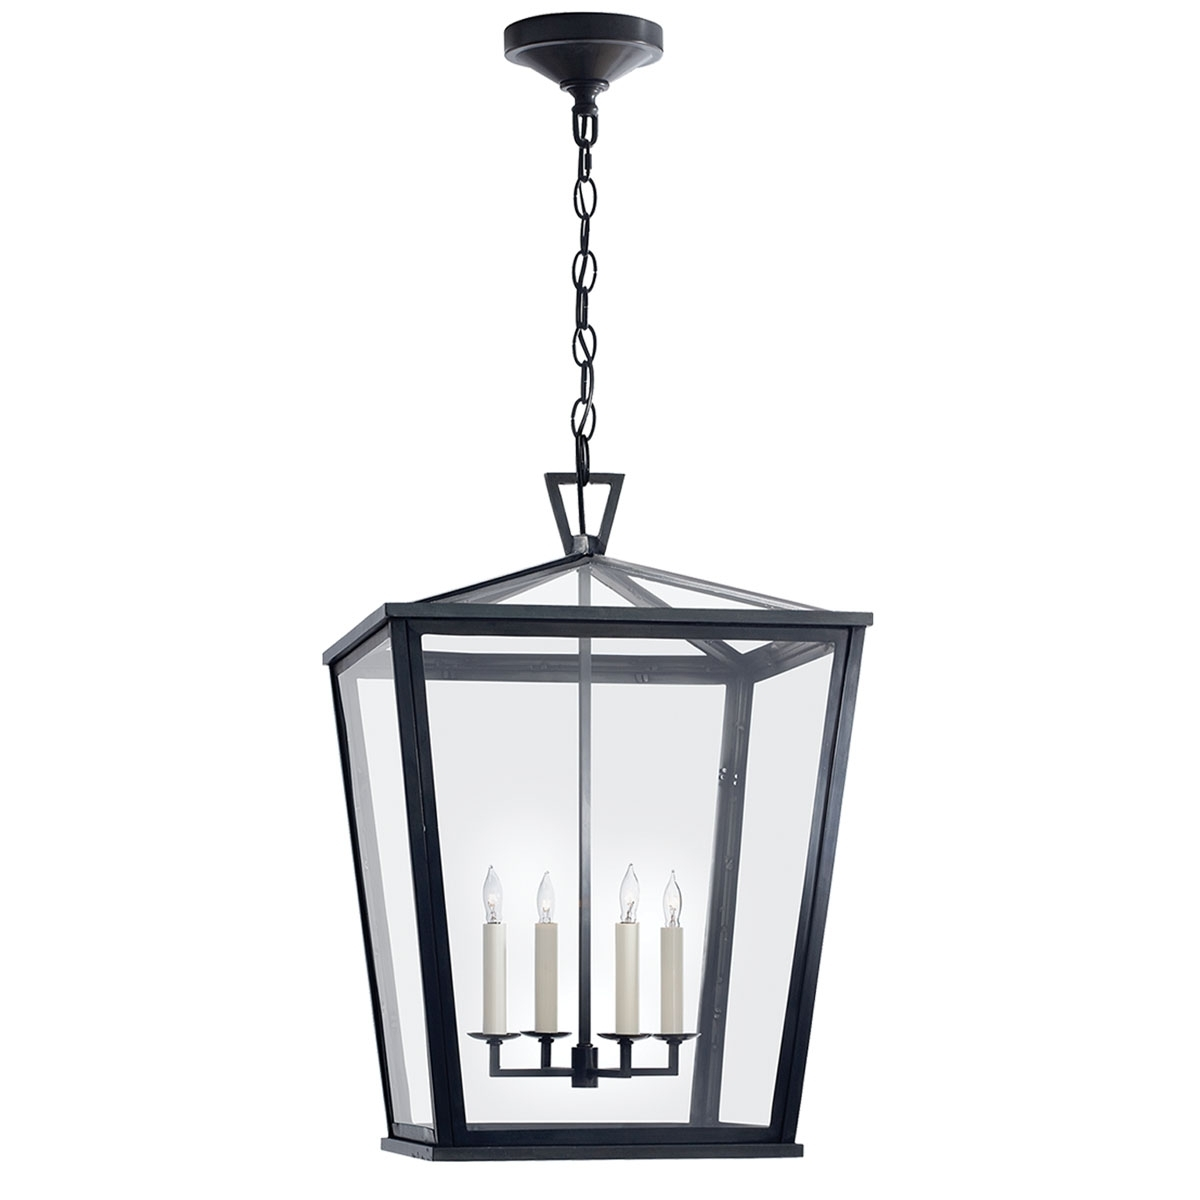 Large Outdoor Hanging Lights Intended For Current Visual Comfort Darlana Large Outdoor Hanging Lantern, Outdoor (View 7 of 20)